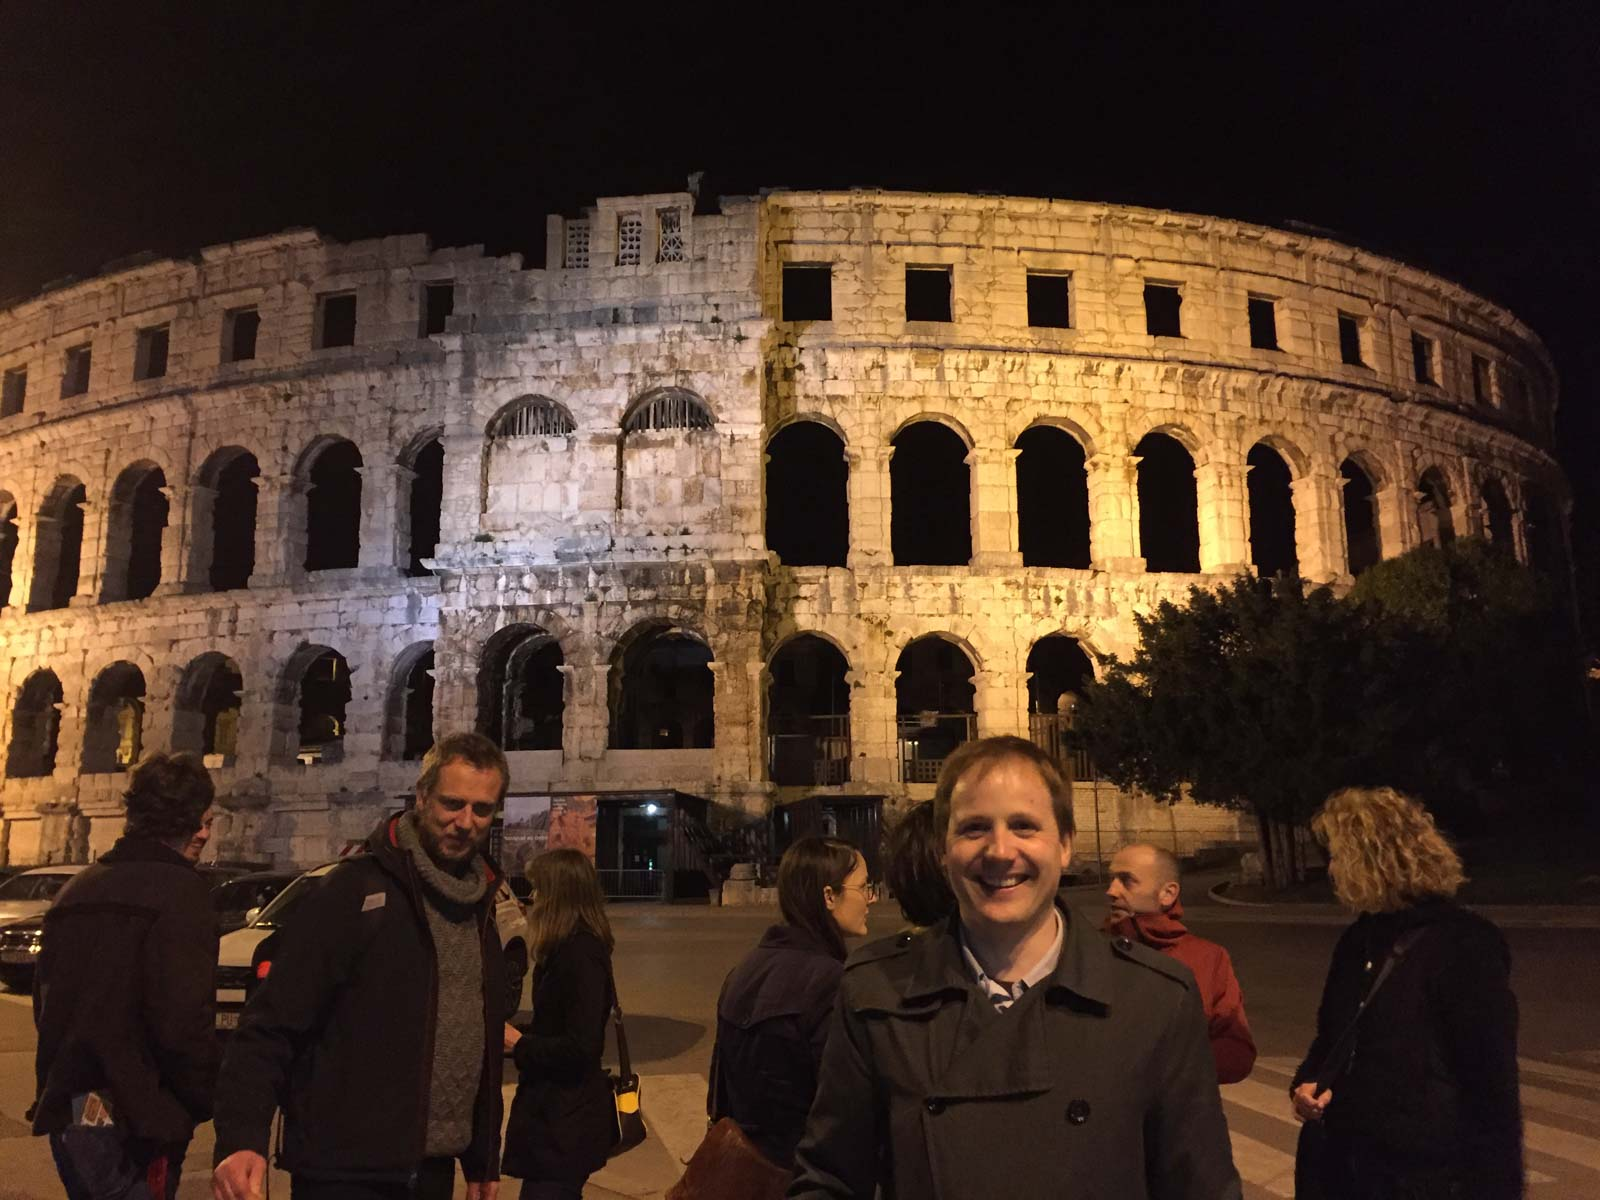 Pula - Excursion by night